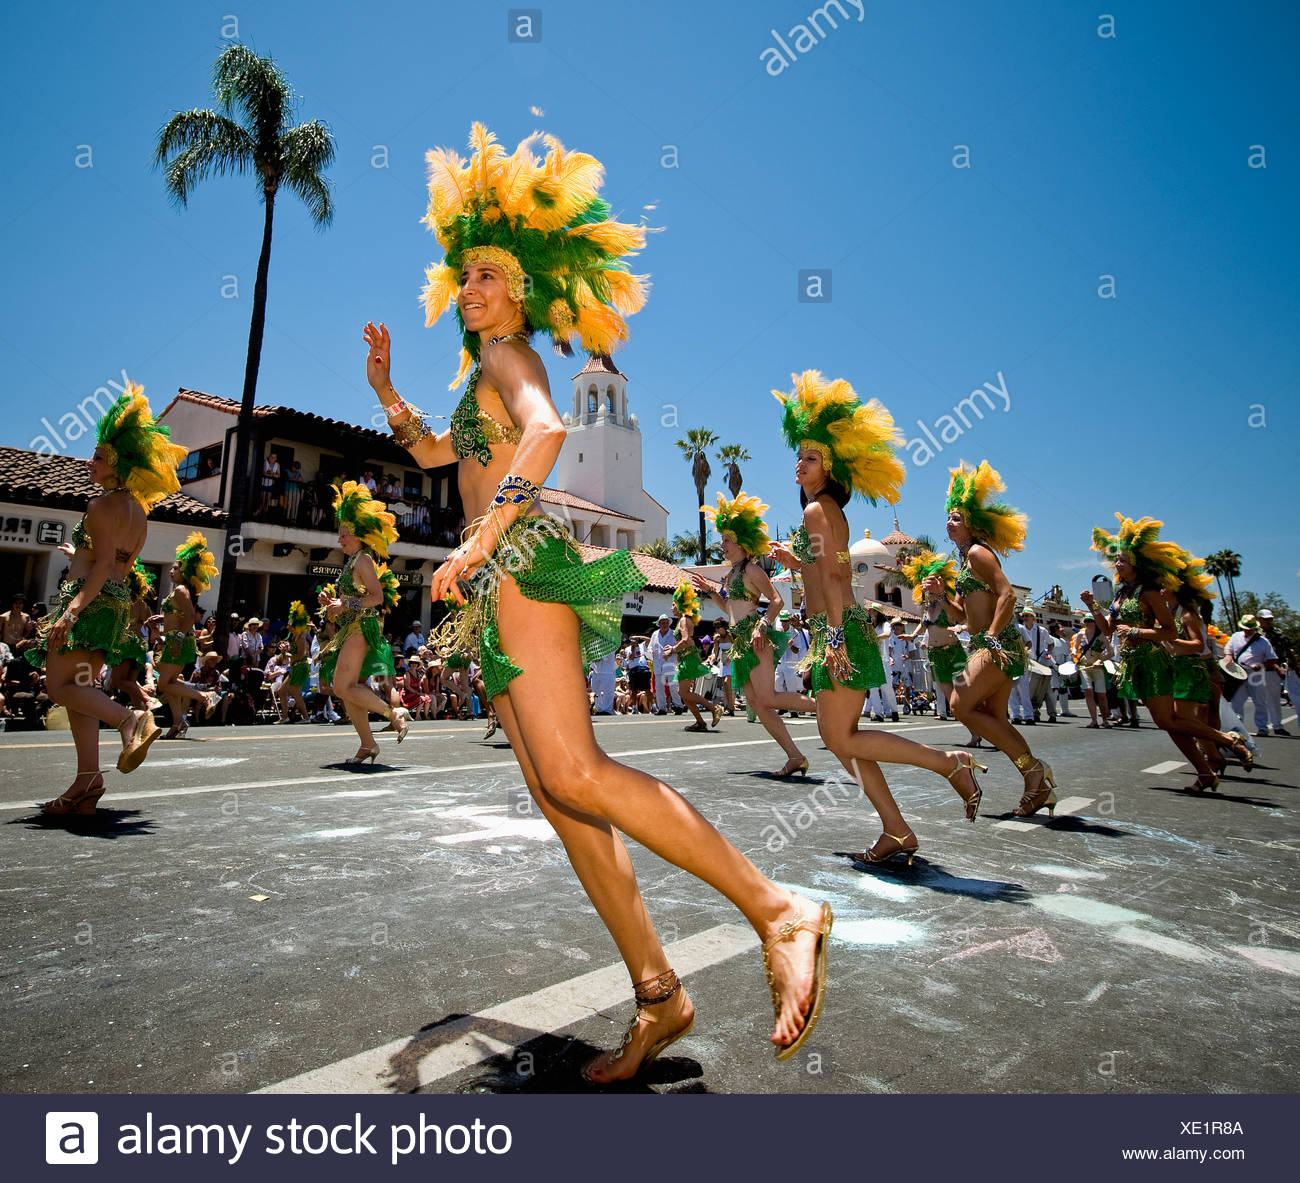 f0a880b613b Characters and dancers participate in the annual Santa Barbara Solstice  Parade. - Stock Image